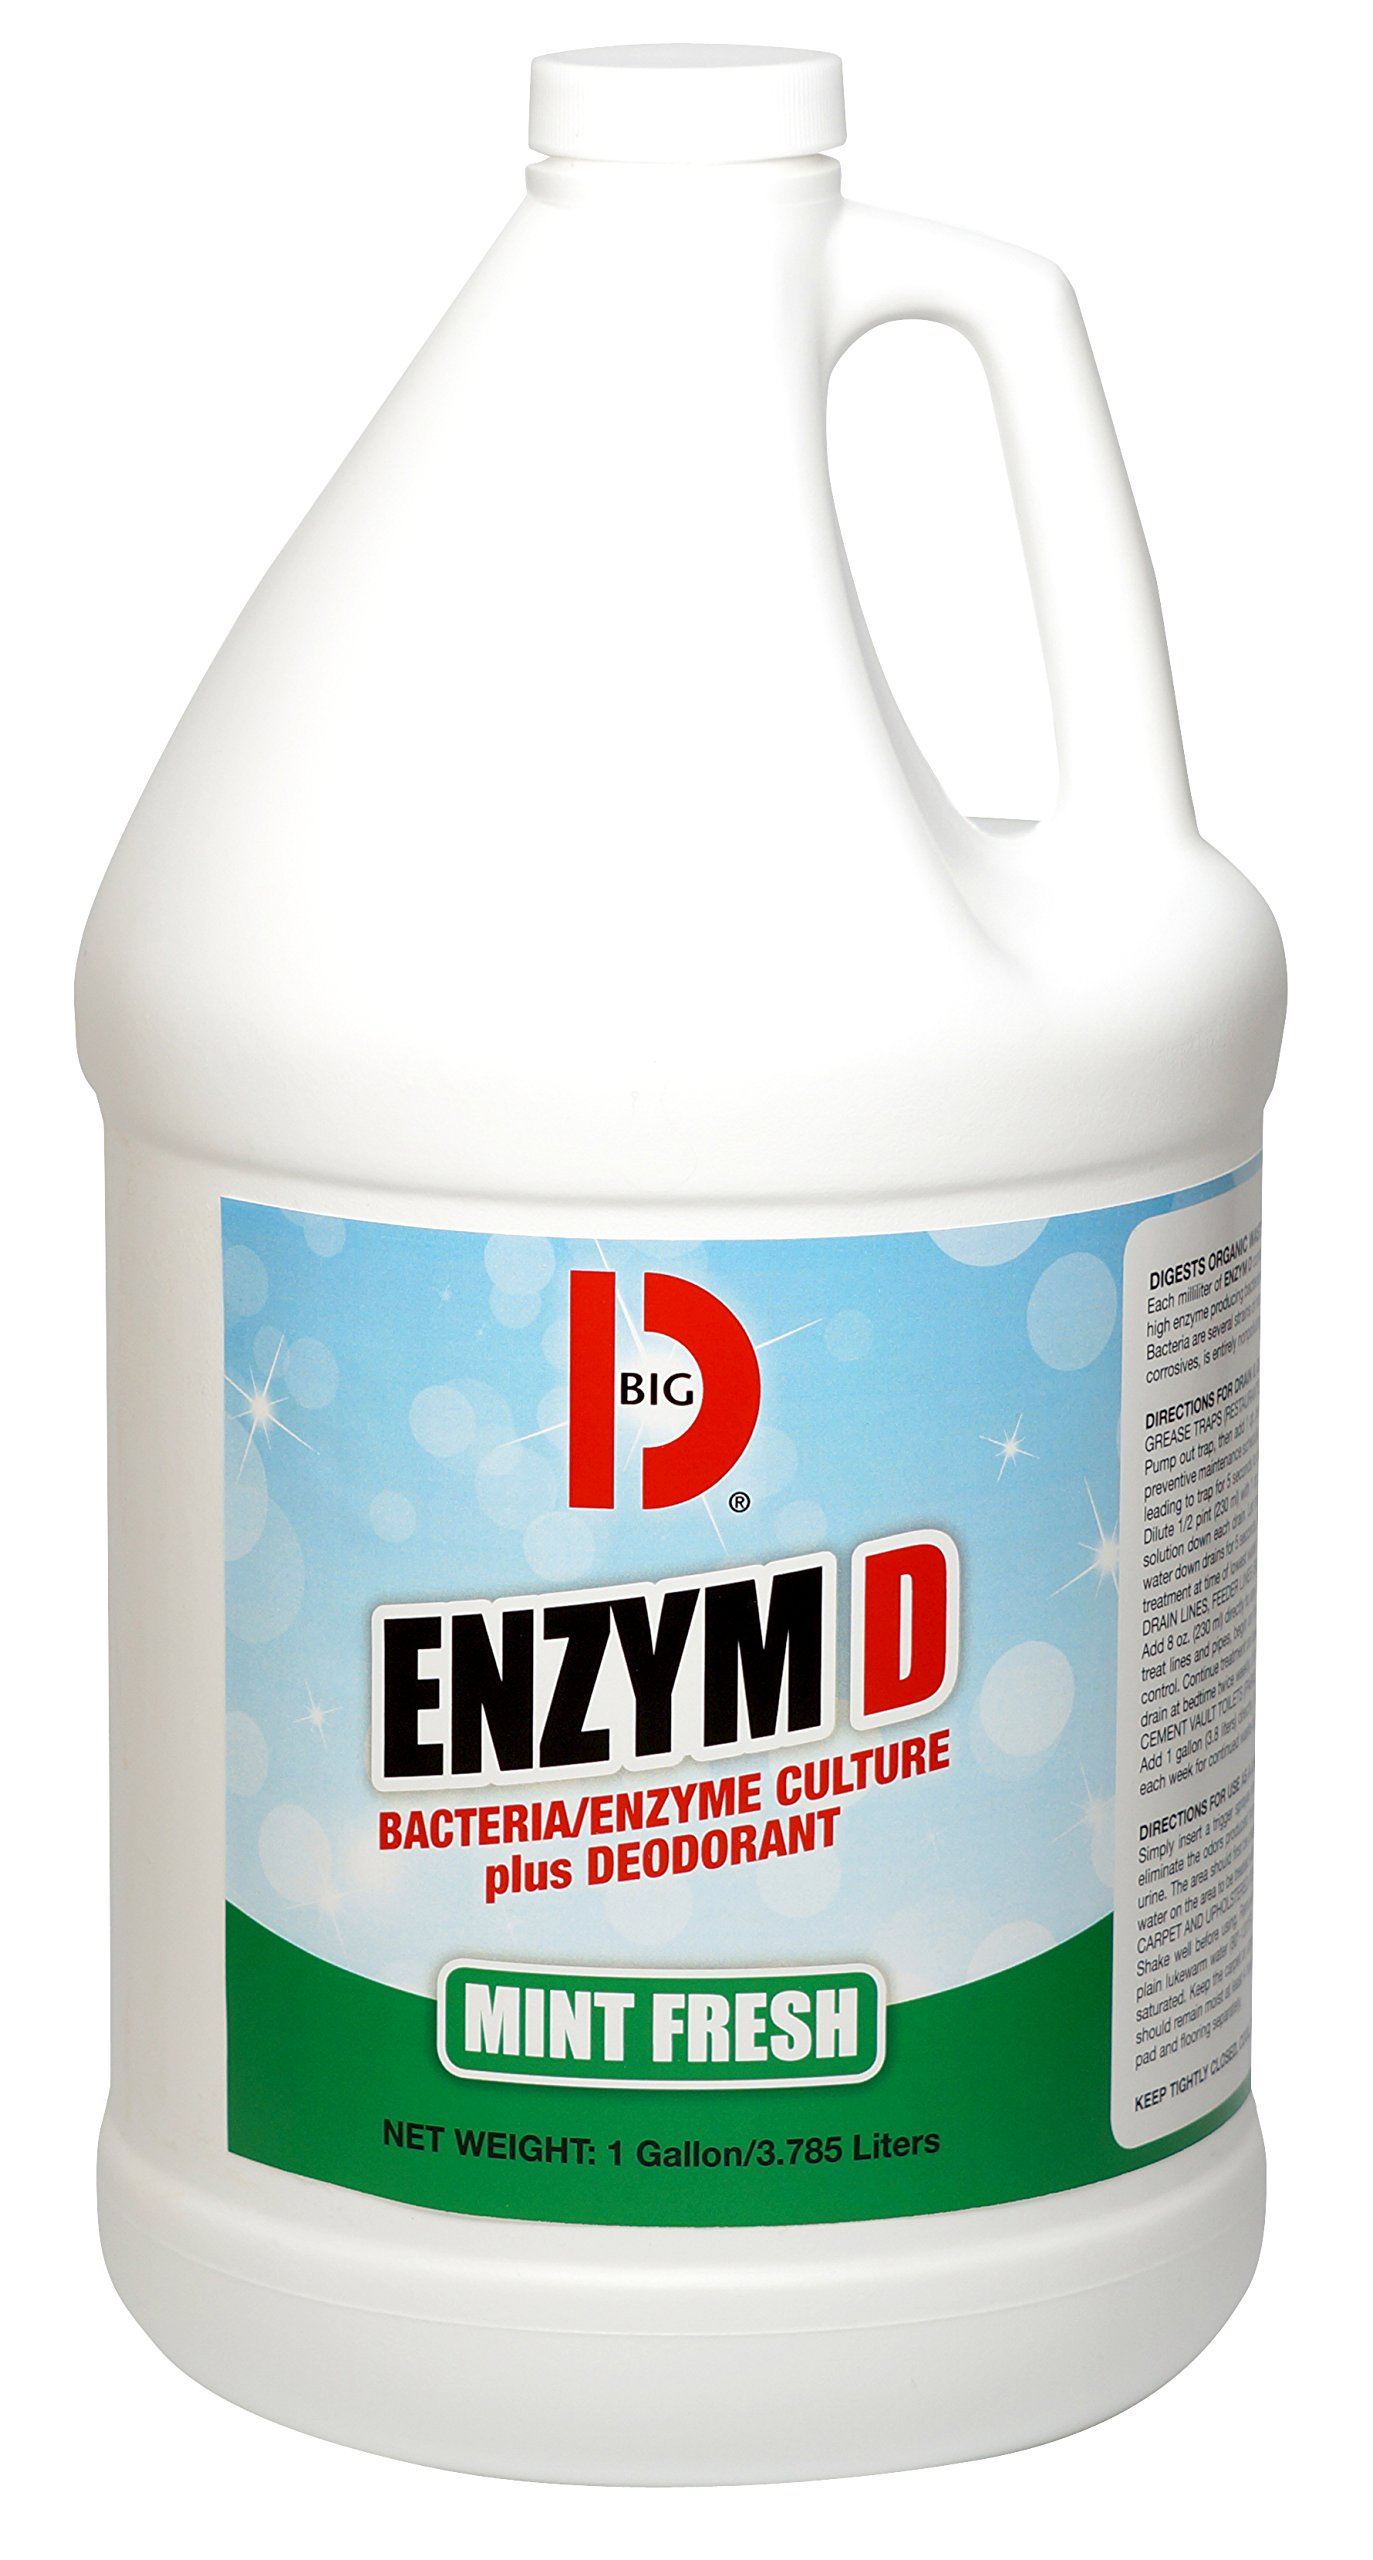 Big D 1504 Enzym D Digester Deodorant, Mint Fresh Fragrance, 1 Gallon (Pack of 4) - Breaks down organic waste and destroys odors - Ideal for use on urine in restrooms and carpets by Big D